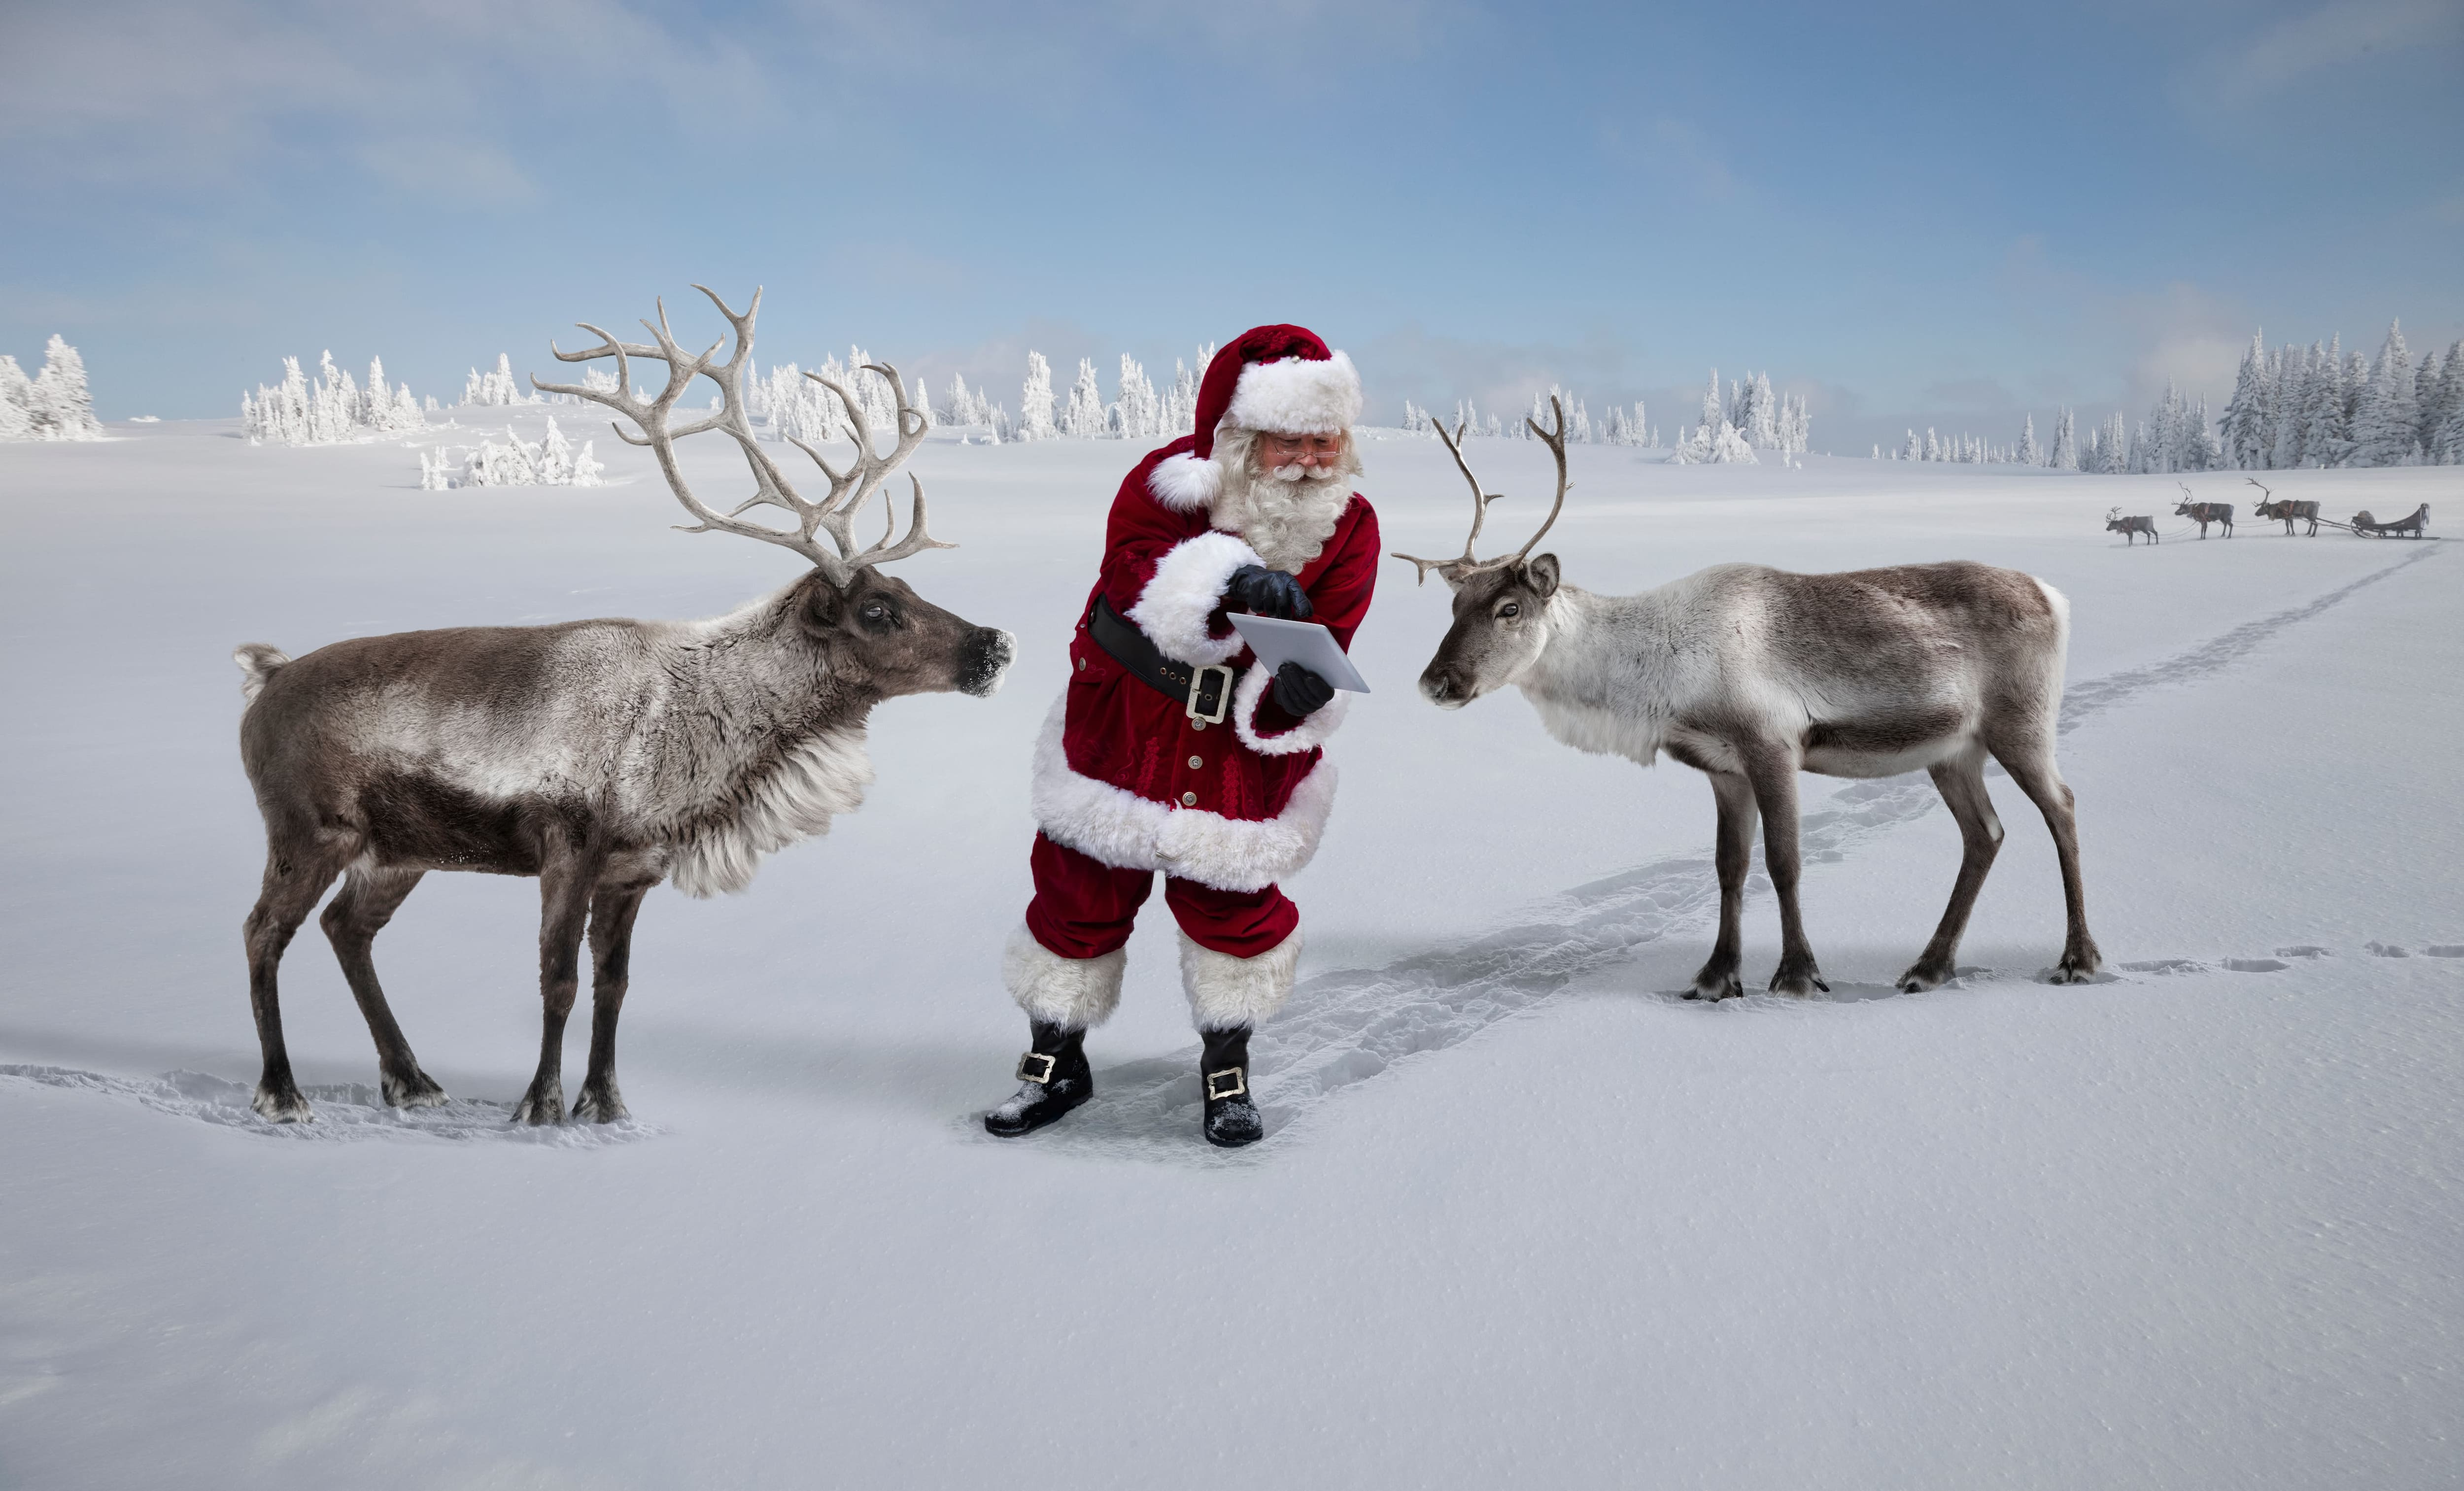 Santa and reindeer at the north pole reviewing their flight plan on a tablet.